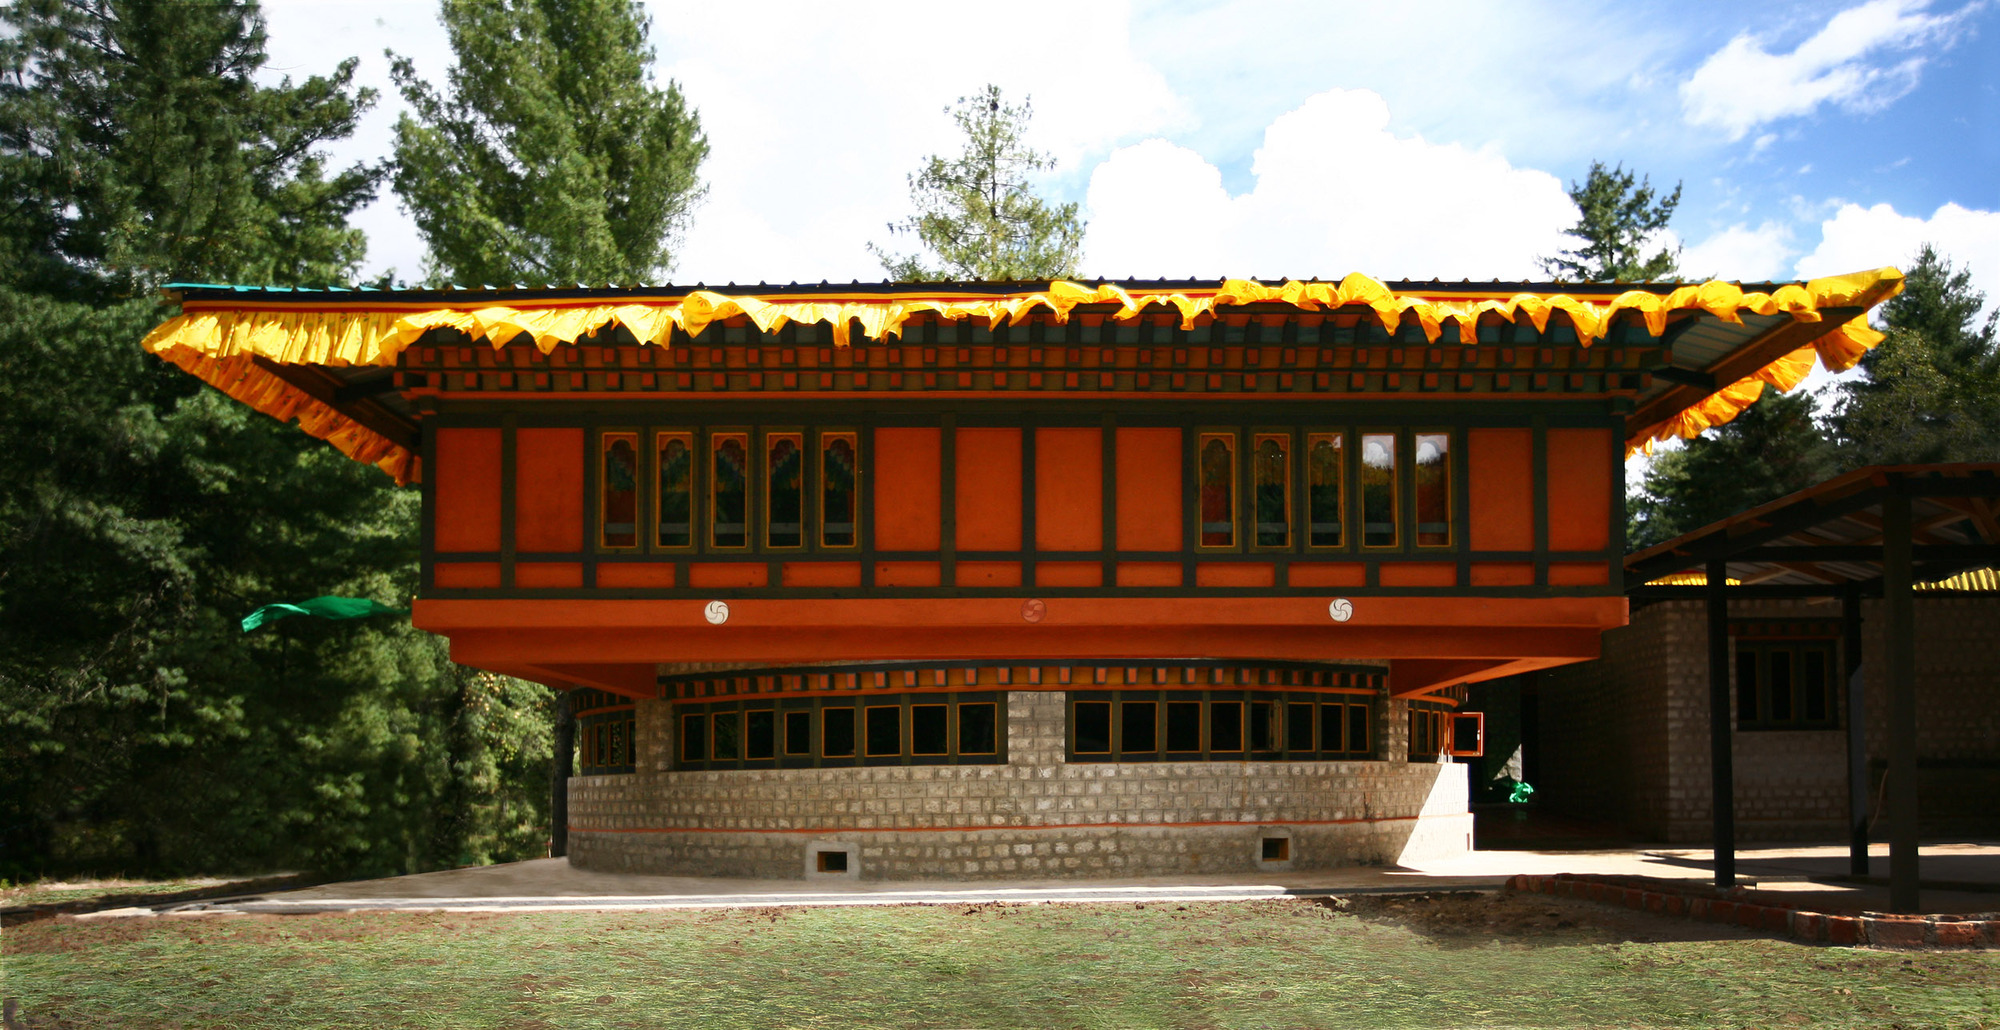 Architecture from Bhutan | ArchDaily